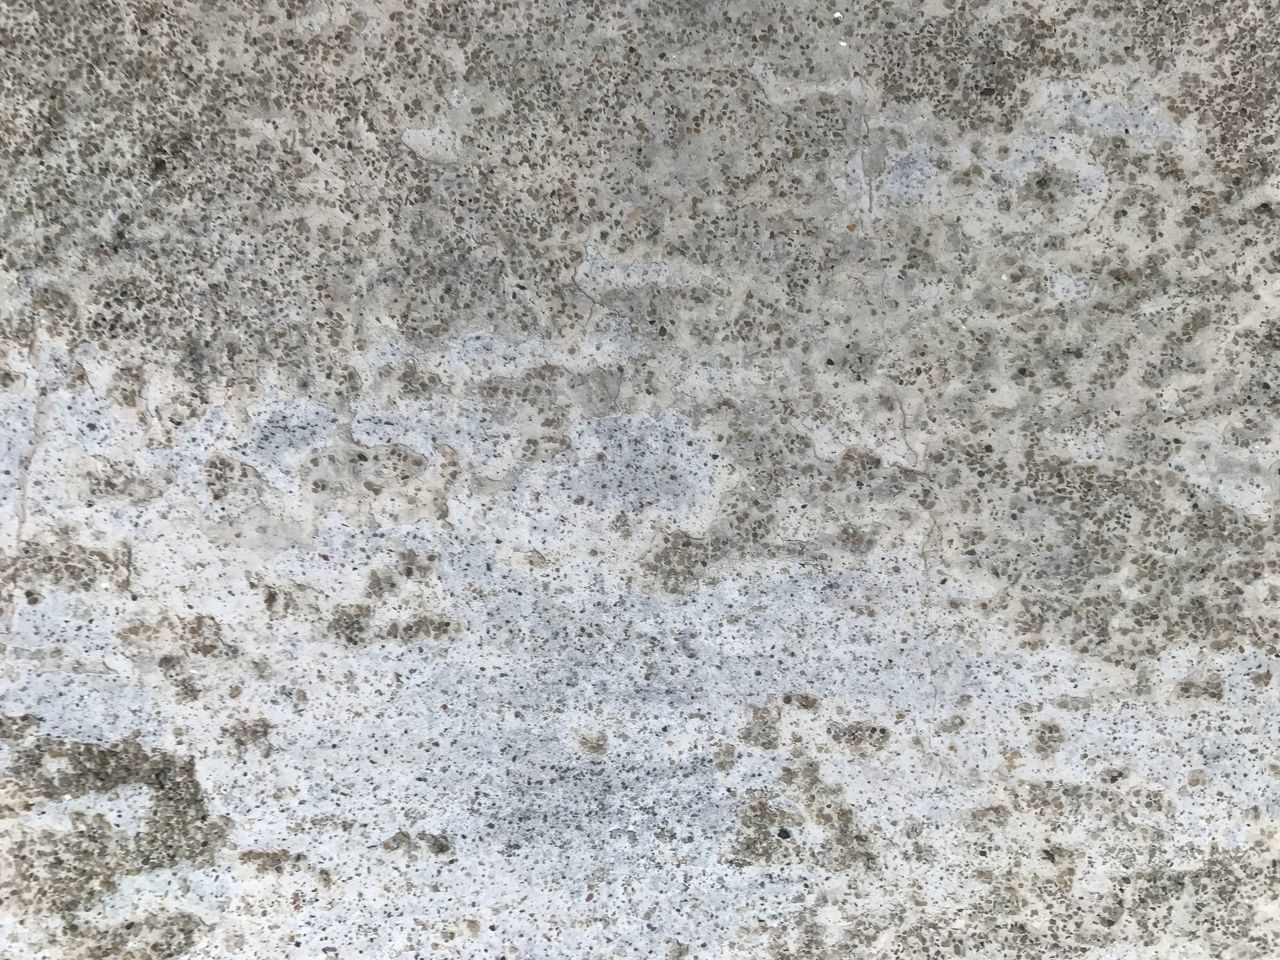 Abstract Architecture Backgrounds Building Exterior Close-up Day Extreme Close-up Full Frame Gray Macro Marble Material Nature No People Outdoors Pattern Photography Themes Rock - Object Stone Material Textured  Textured Effect Tile Wallpaper White Color